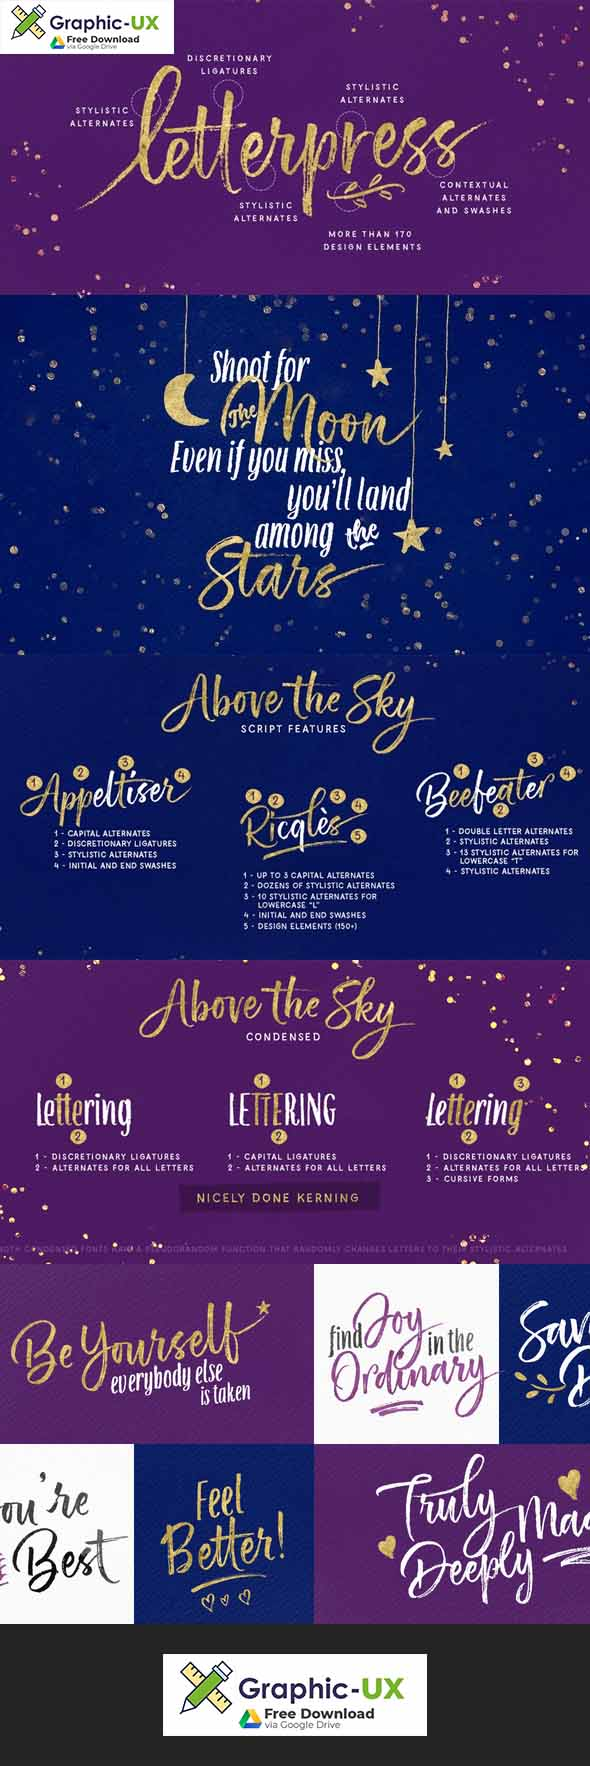 Above the Sky Font free